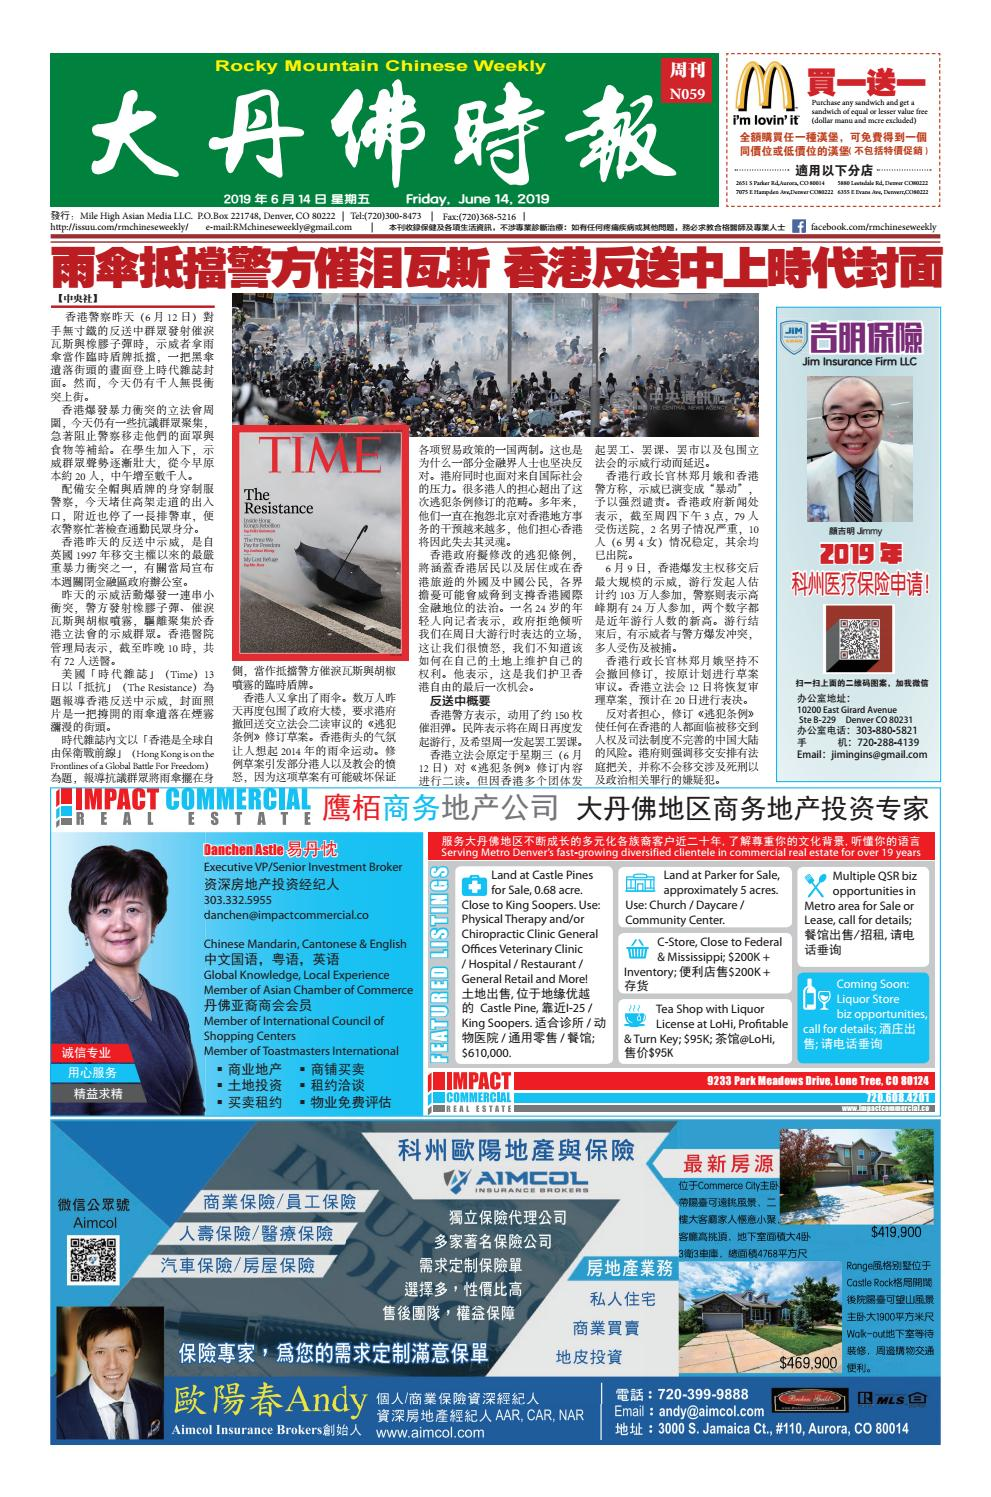 2019 06 14n059 By Rocky Mountain Chinese Weekly Issuu